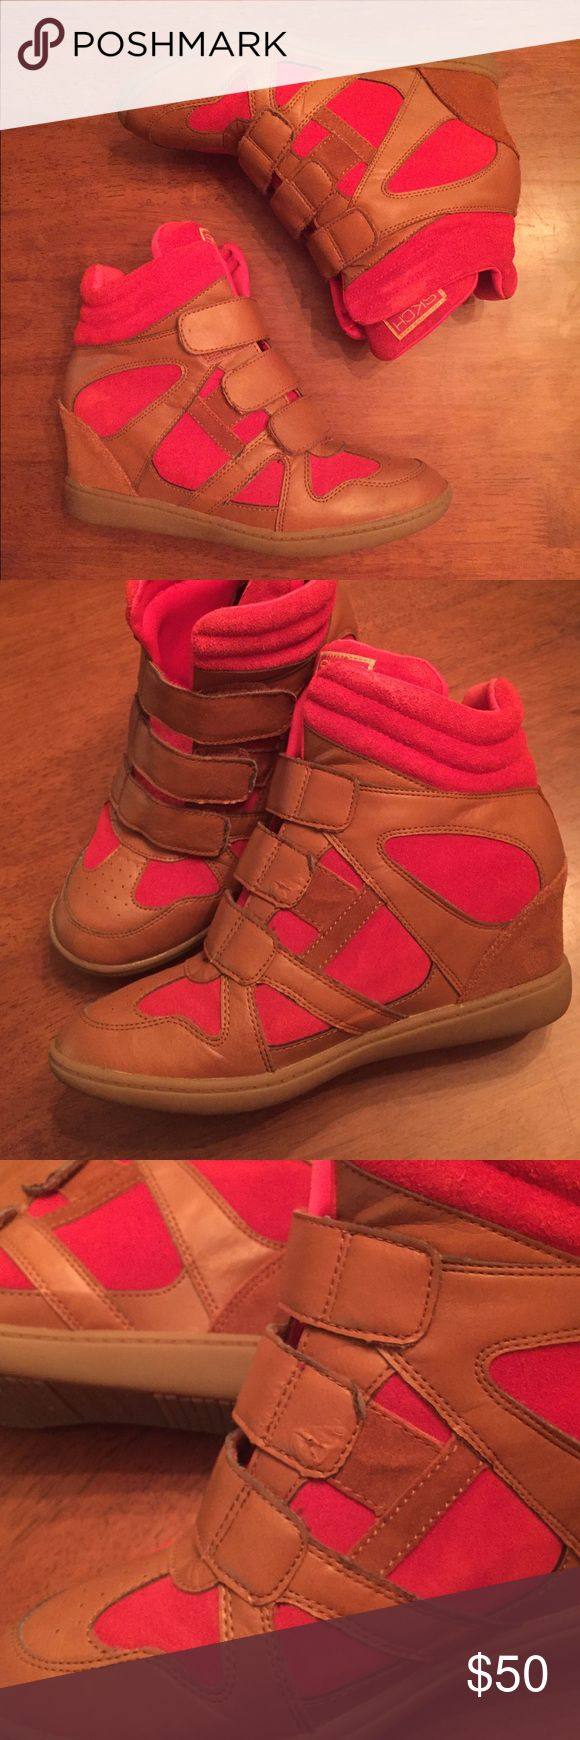 Brown and Red Skechers Wedge Sneakers Comfortable wedge sneakers in very good condition - only worn twice! There is a small tear on the middle velcro strap, which is visible in the second and third picture but barely noticeable when worn Skechers Shoes Sneakers